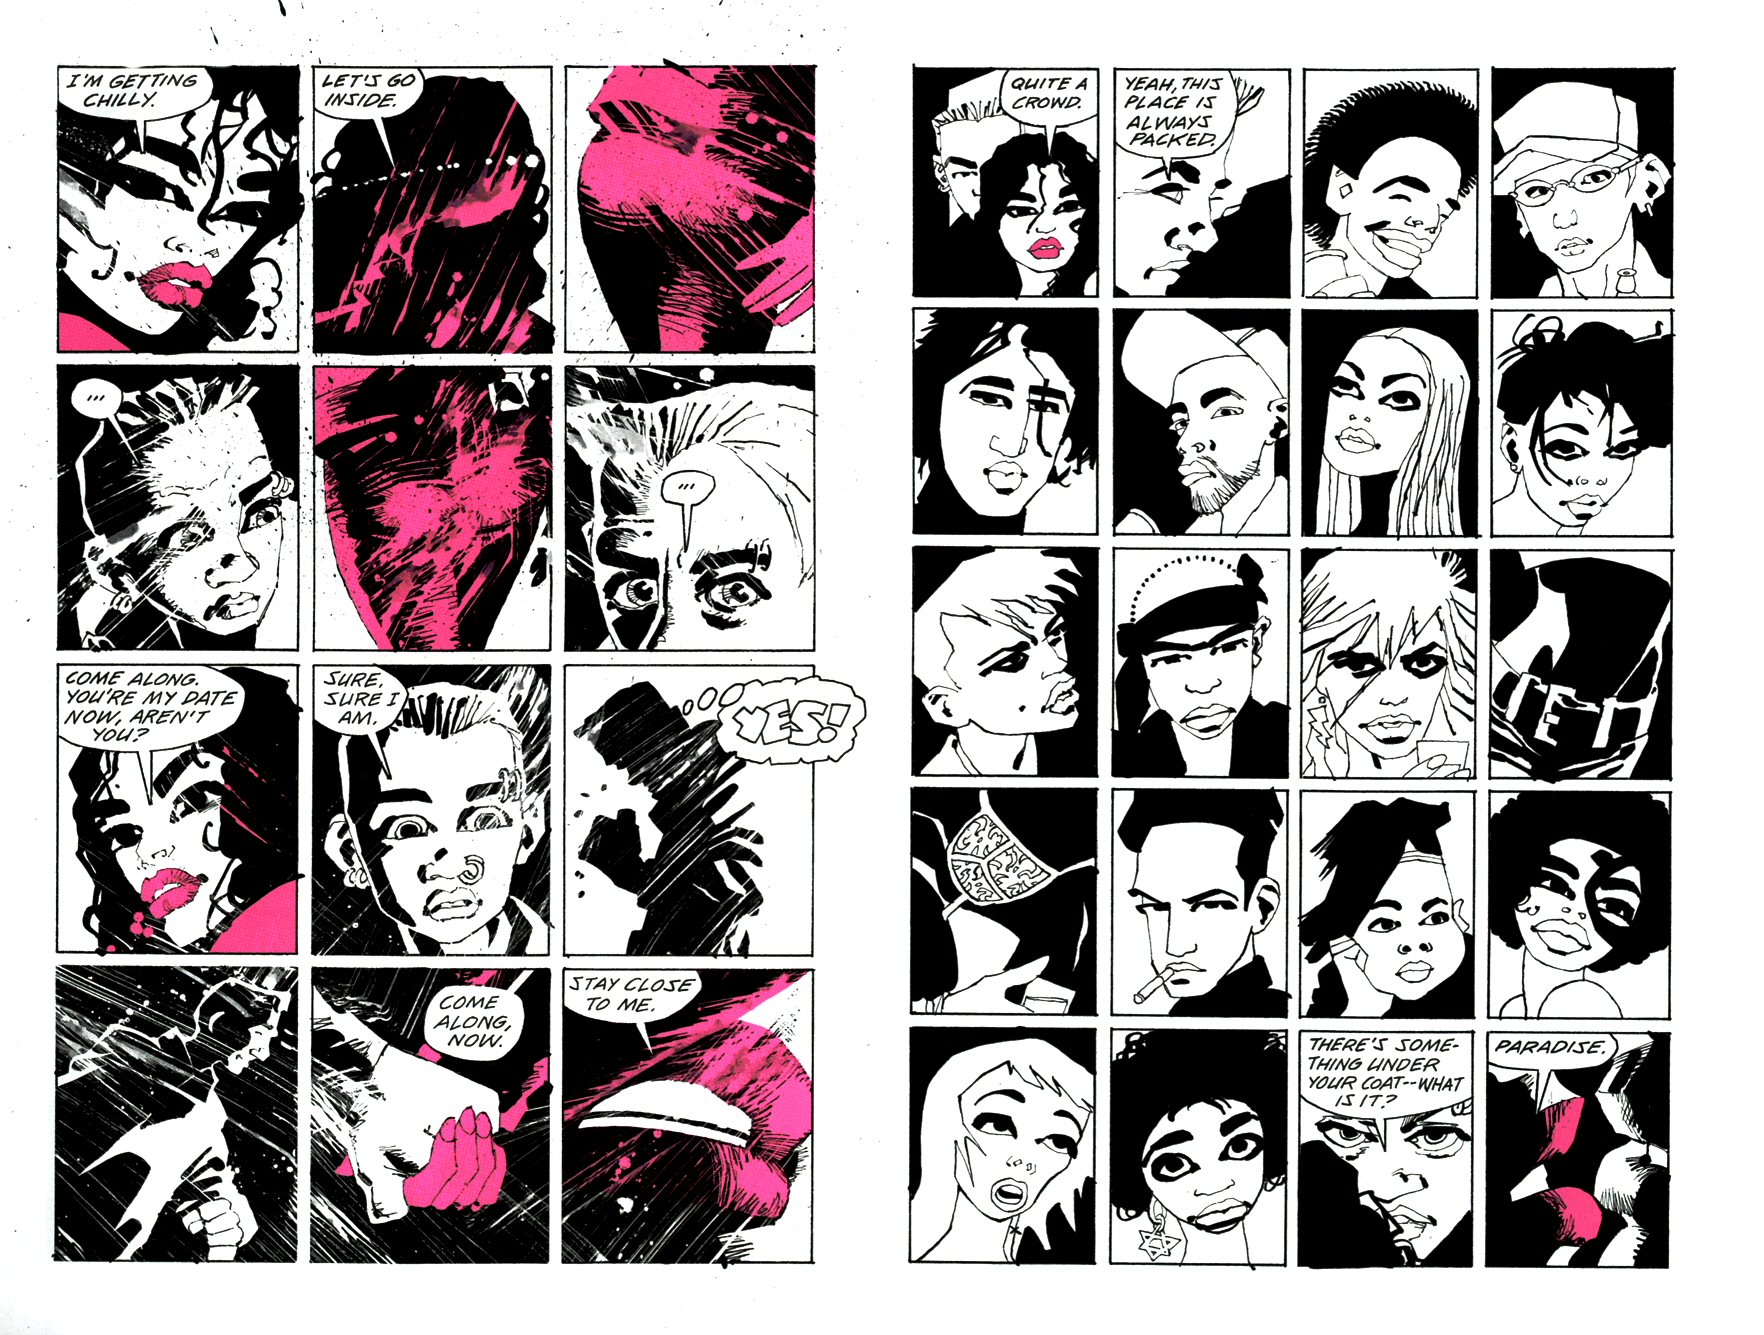 Read online Frank Miller's Holy Terror comic -  Issue # TPB - 43